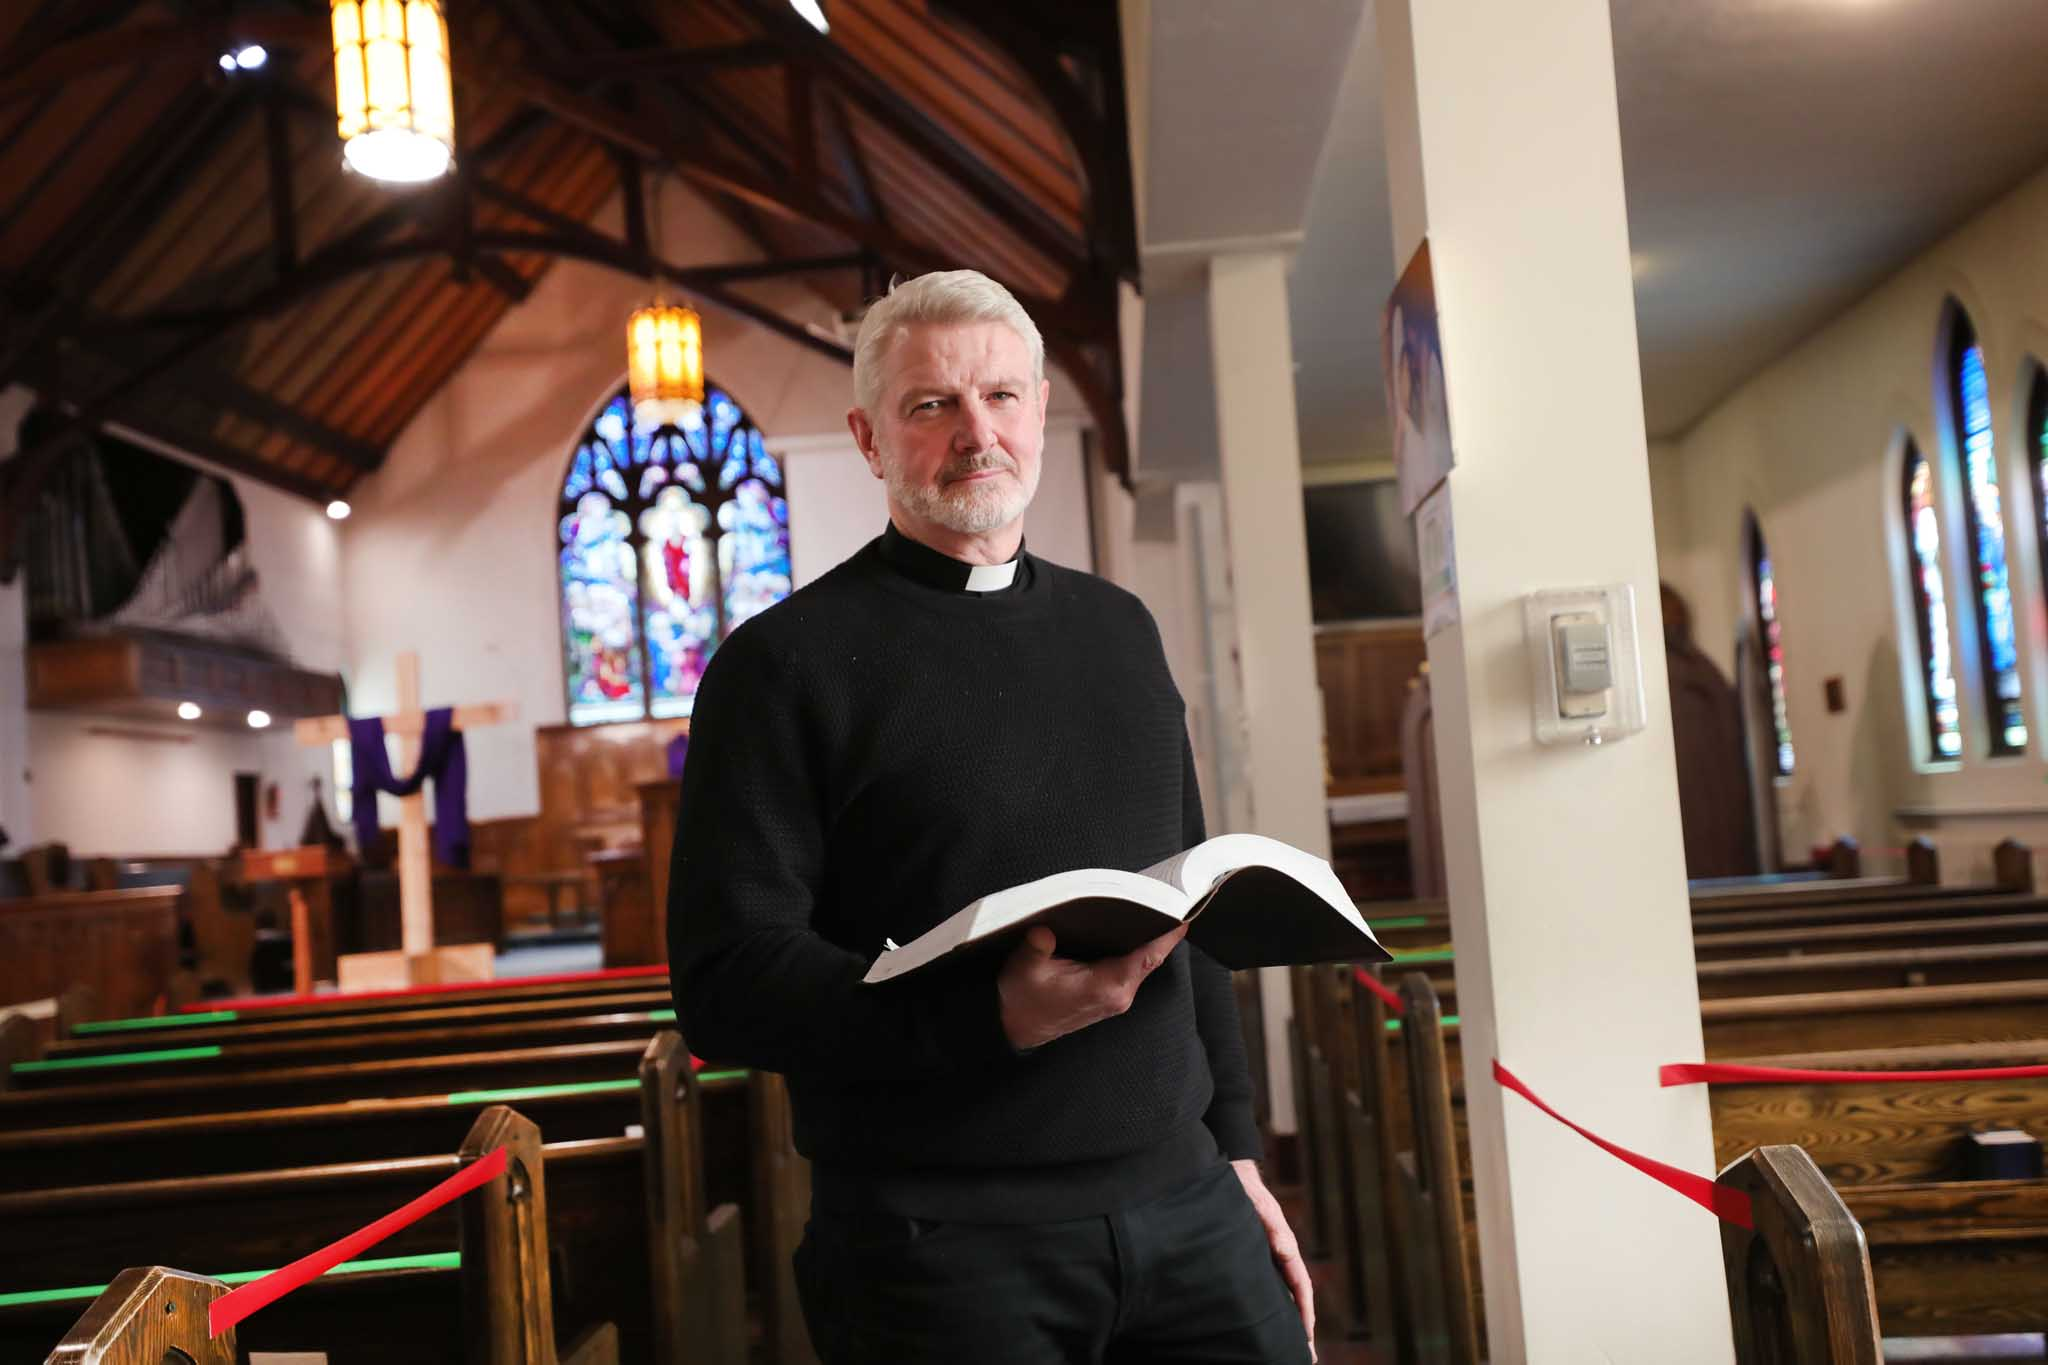 Rev. David Labdon, with St. Aiden's Anglican Church, prepping for in-person Good Friday services. (Ruth Bonneville / Winnipeg Free Press)